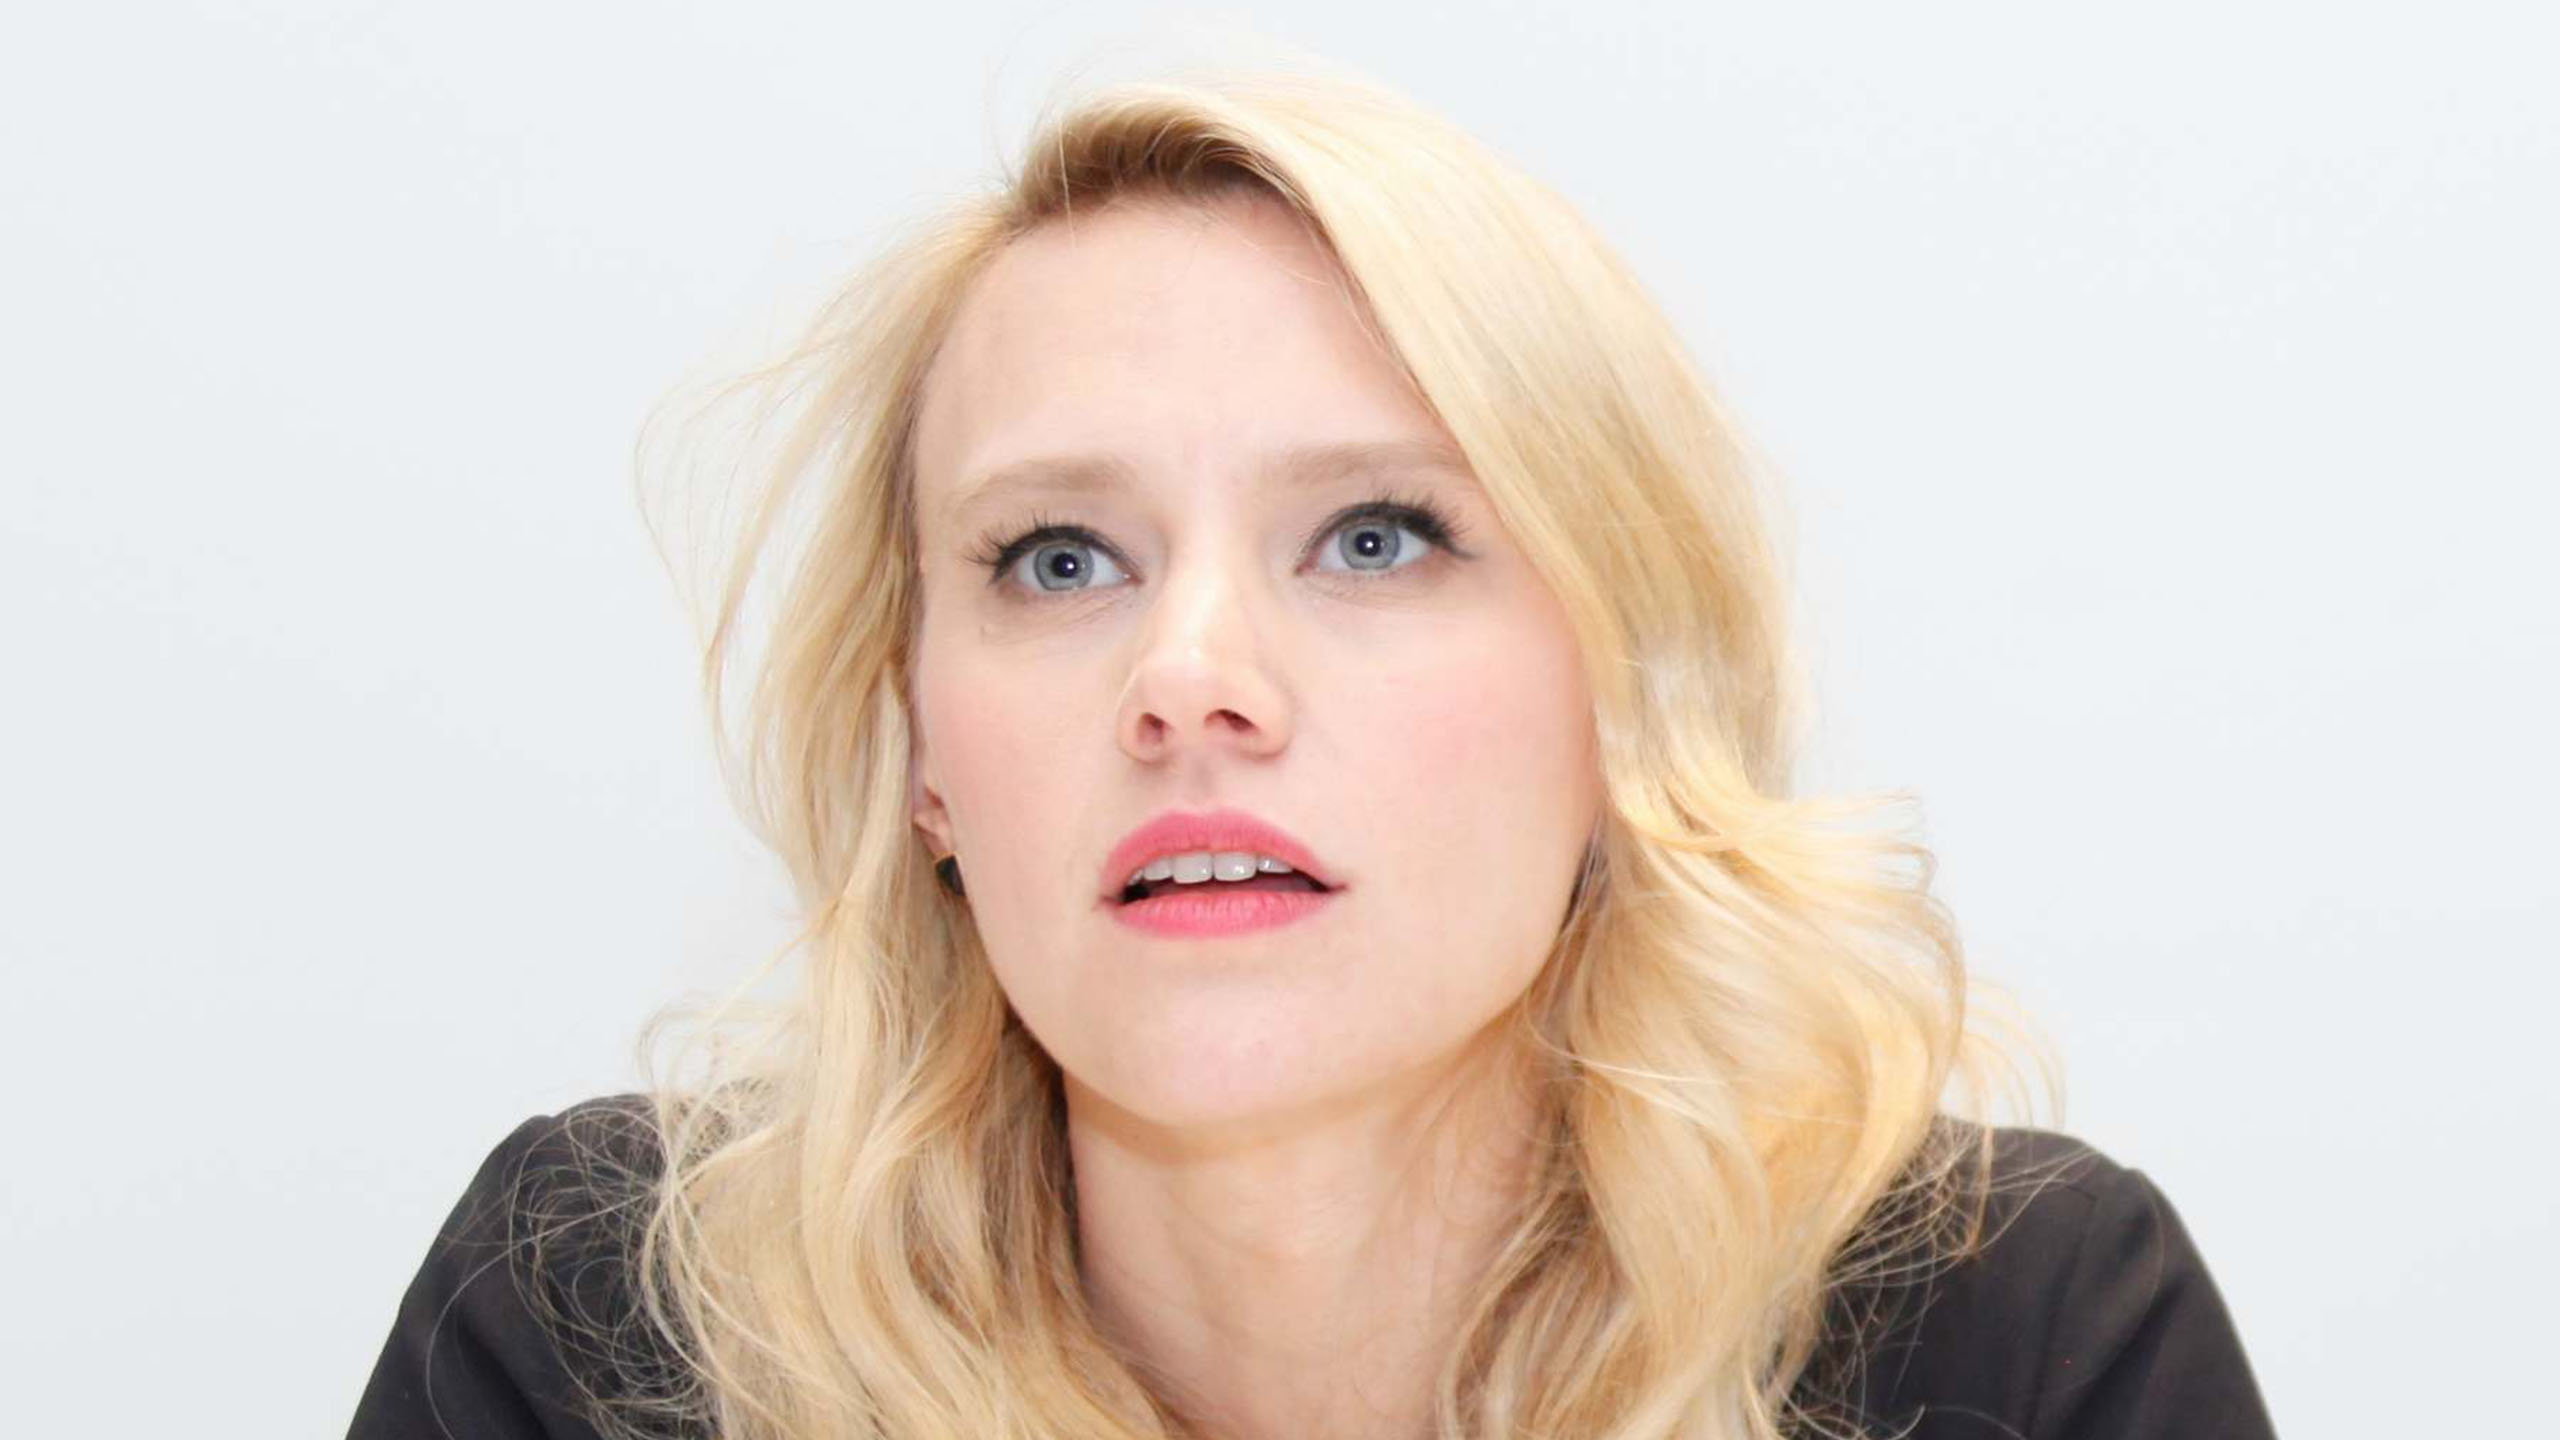 Kate Mckinnon >> Kate McKinnon Wallpaper Background 57309 2560x1440 px ...